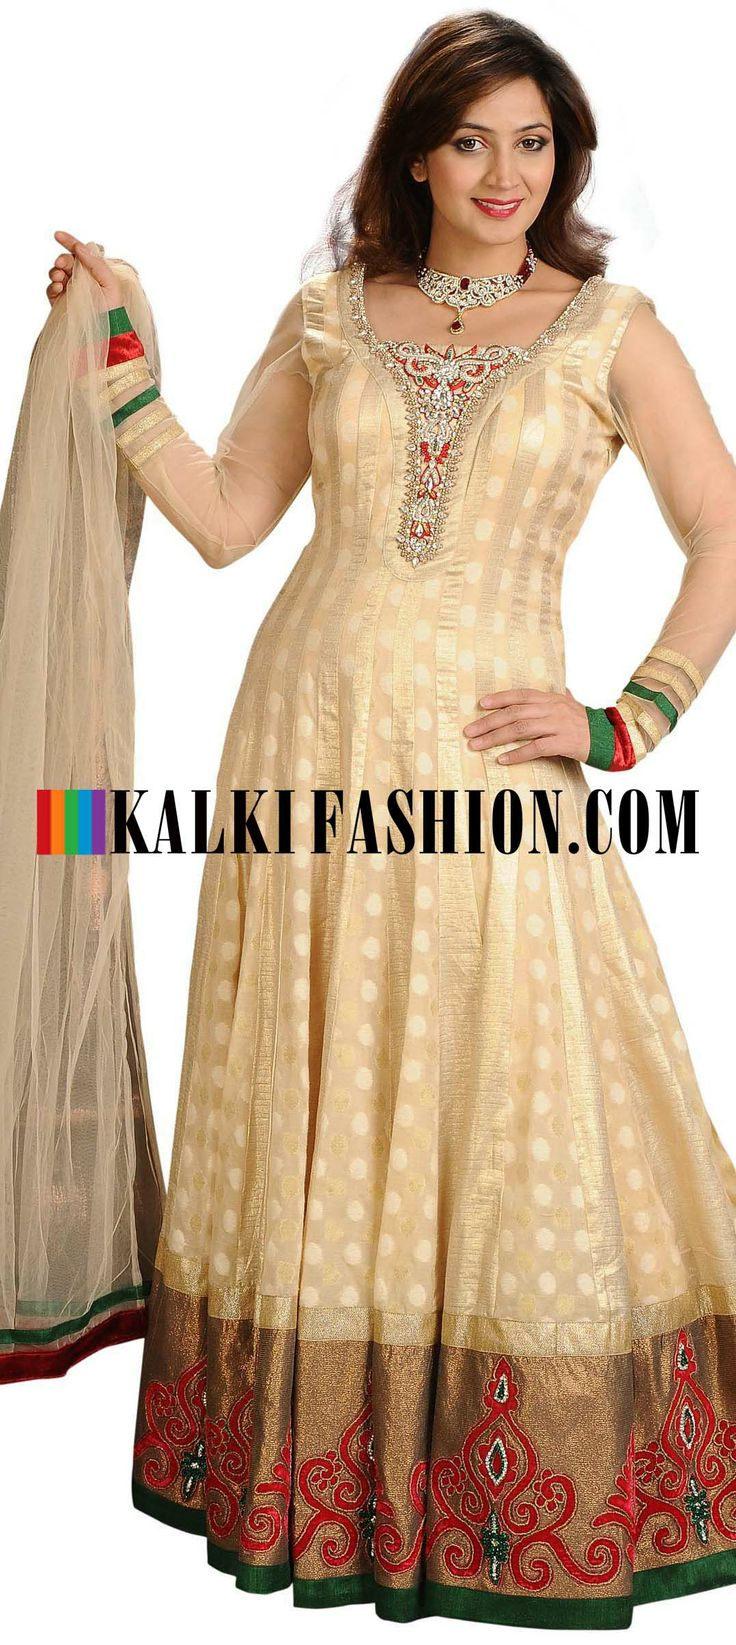 Buy Online from the link below. We ship worldwide (Free Shipping over US$100) http://www.kalkifashion.com/beige-anarkali-suit-featuring-in-hand-work-and-stone.html